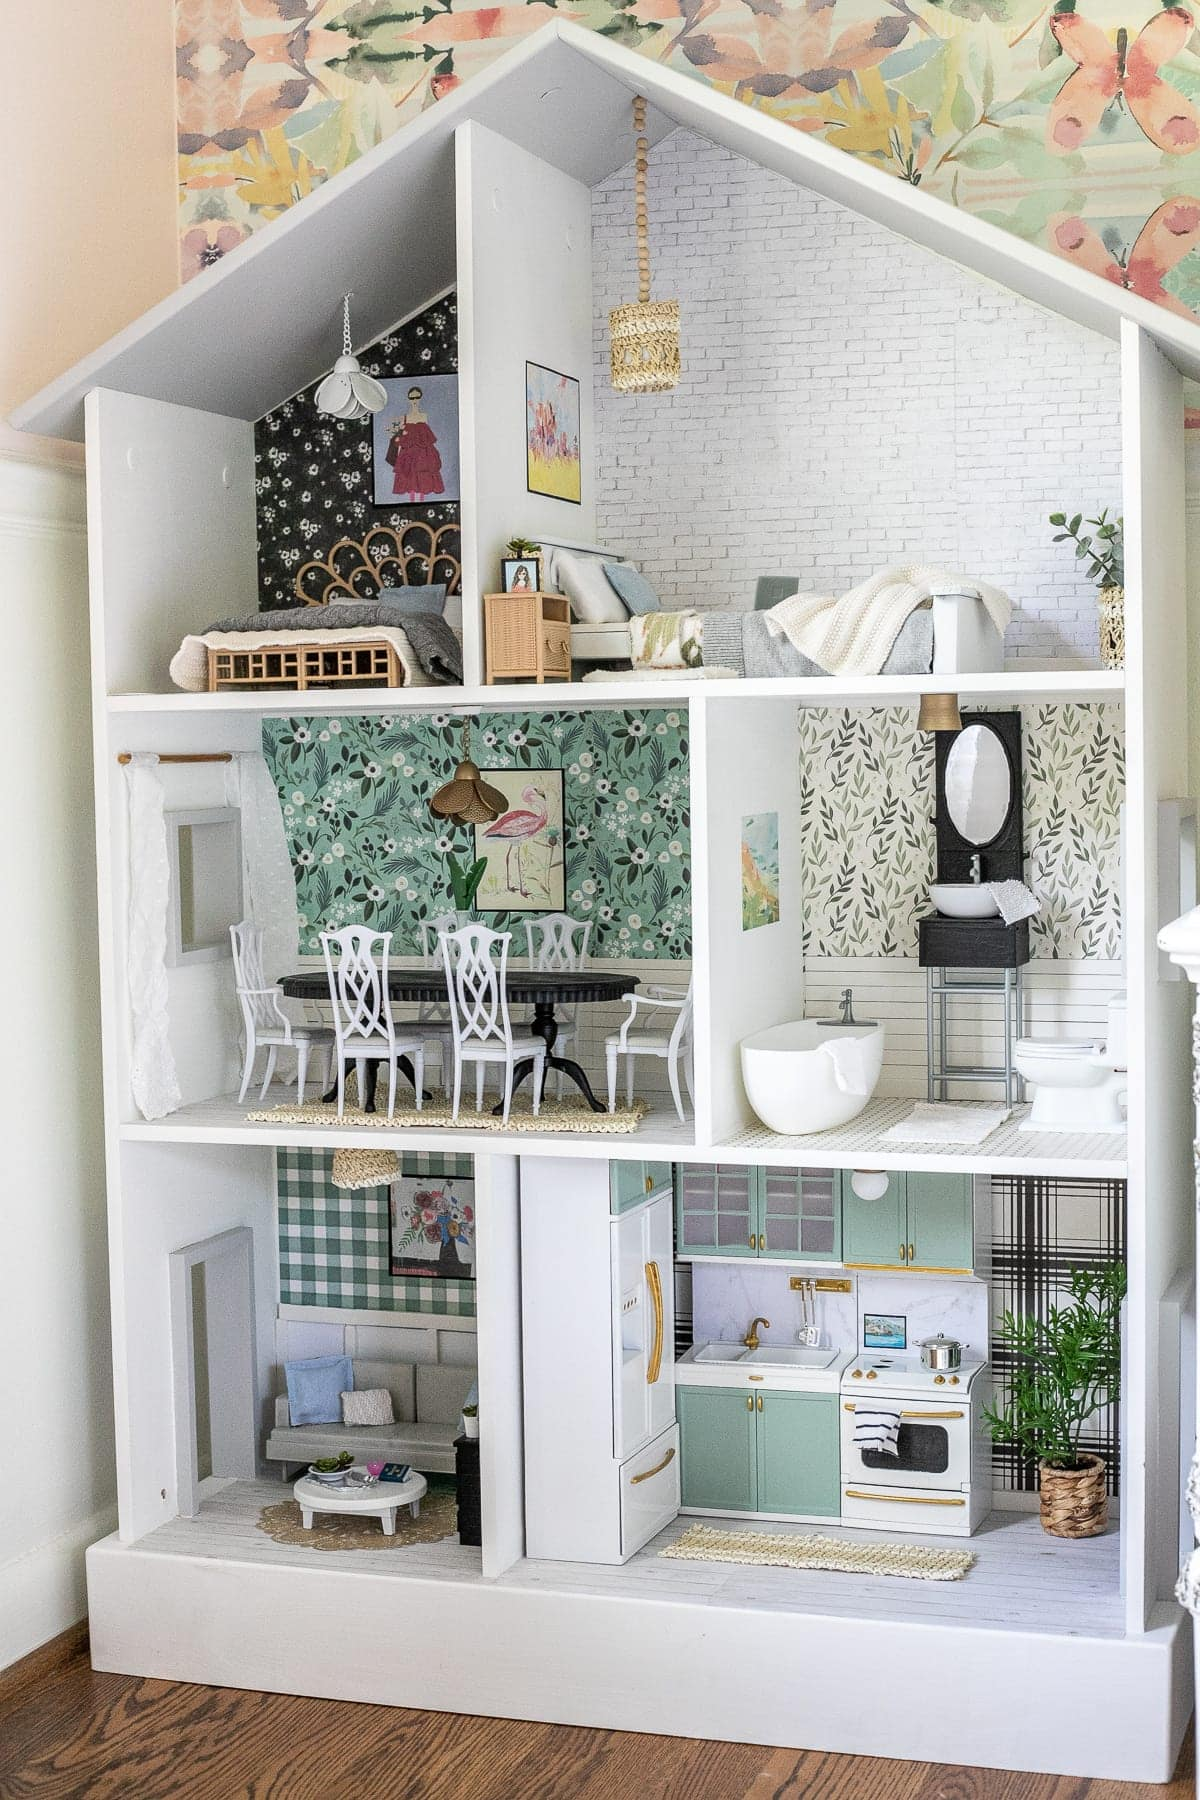 Thrifted Dollhouse Makeover | Tips and tricks for using what you already have and repurposing every day items from around the house to create a beautiful, real-looking dollhouse.